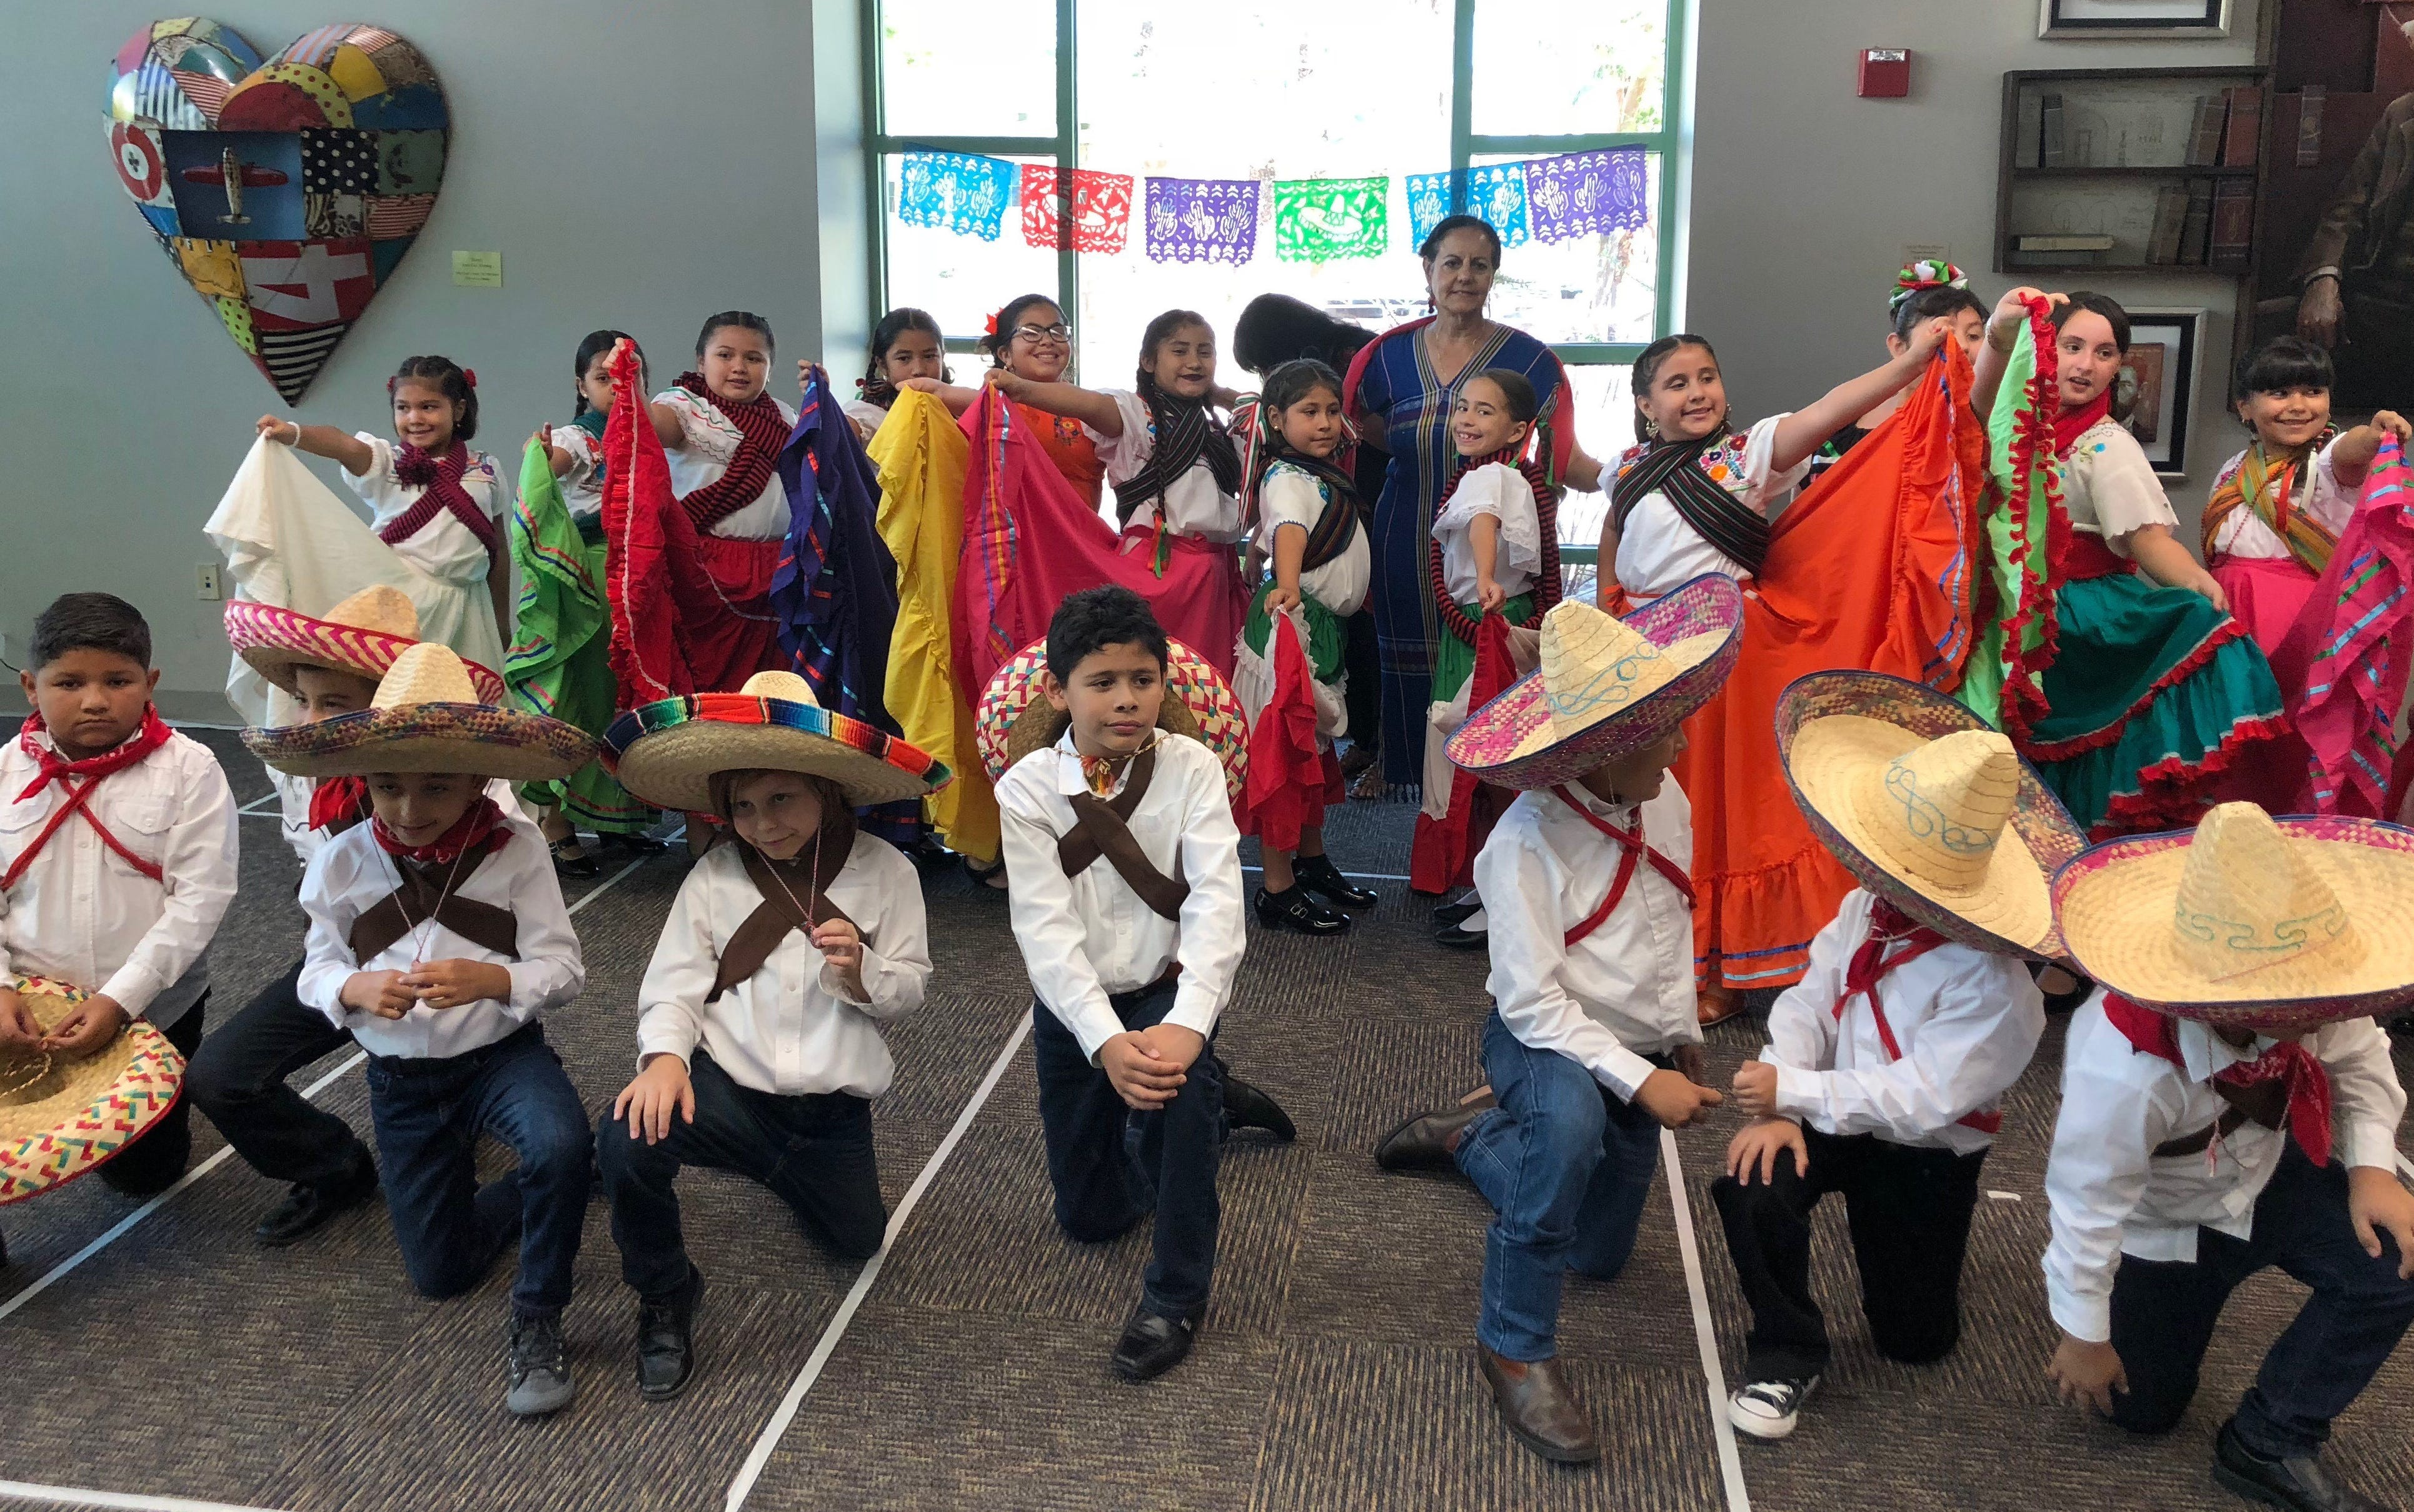 Students from Cesar Chavez Elementary in Coachella perform at the La Quinta library in September. They were ordered to remove depictions ofMexican culture from the performance, which was all about Mexican Independence Day.